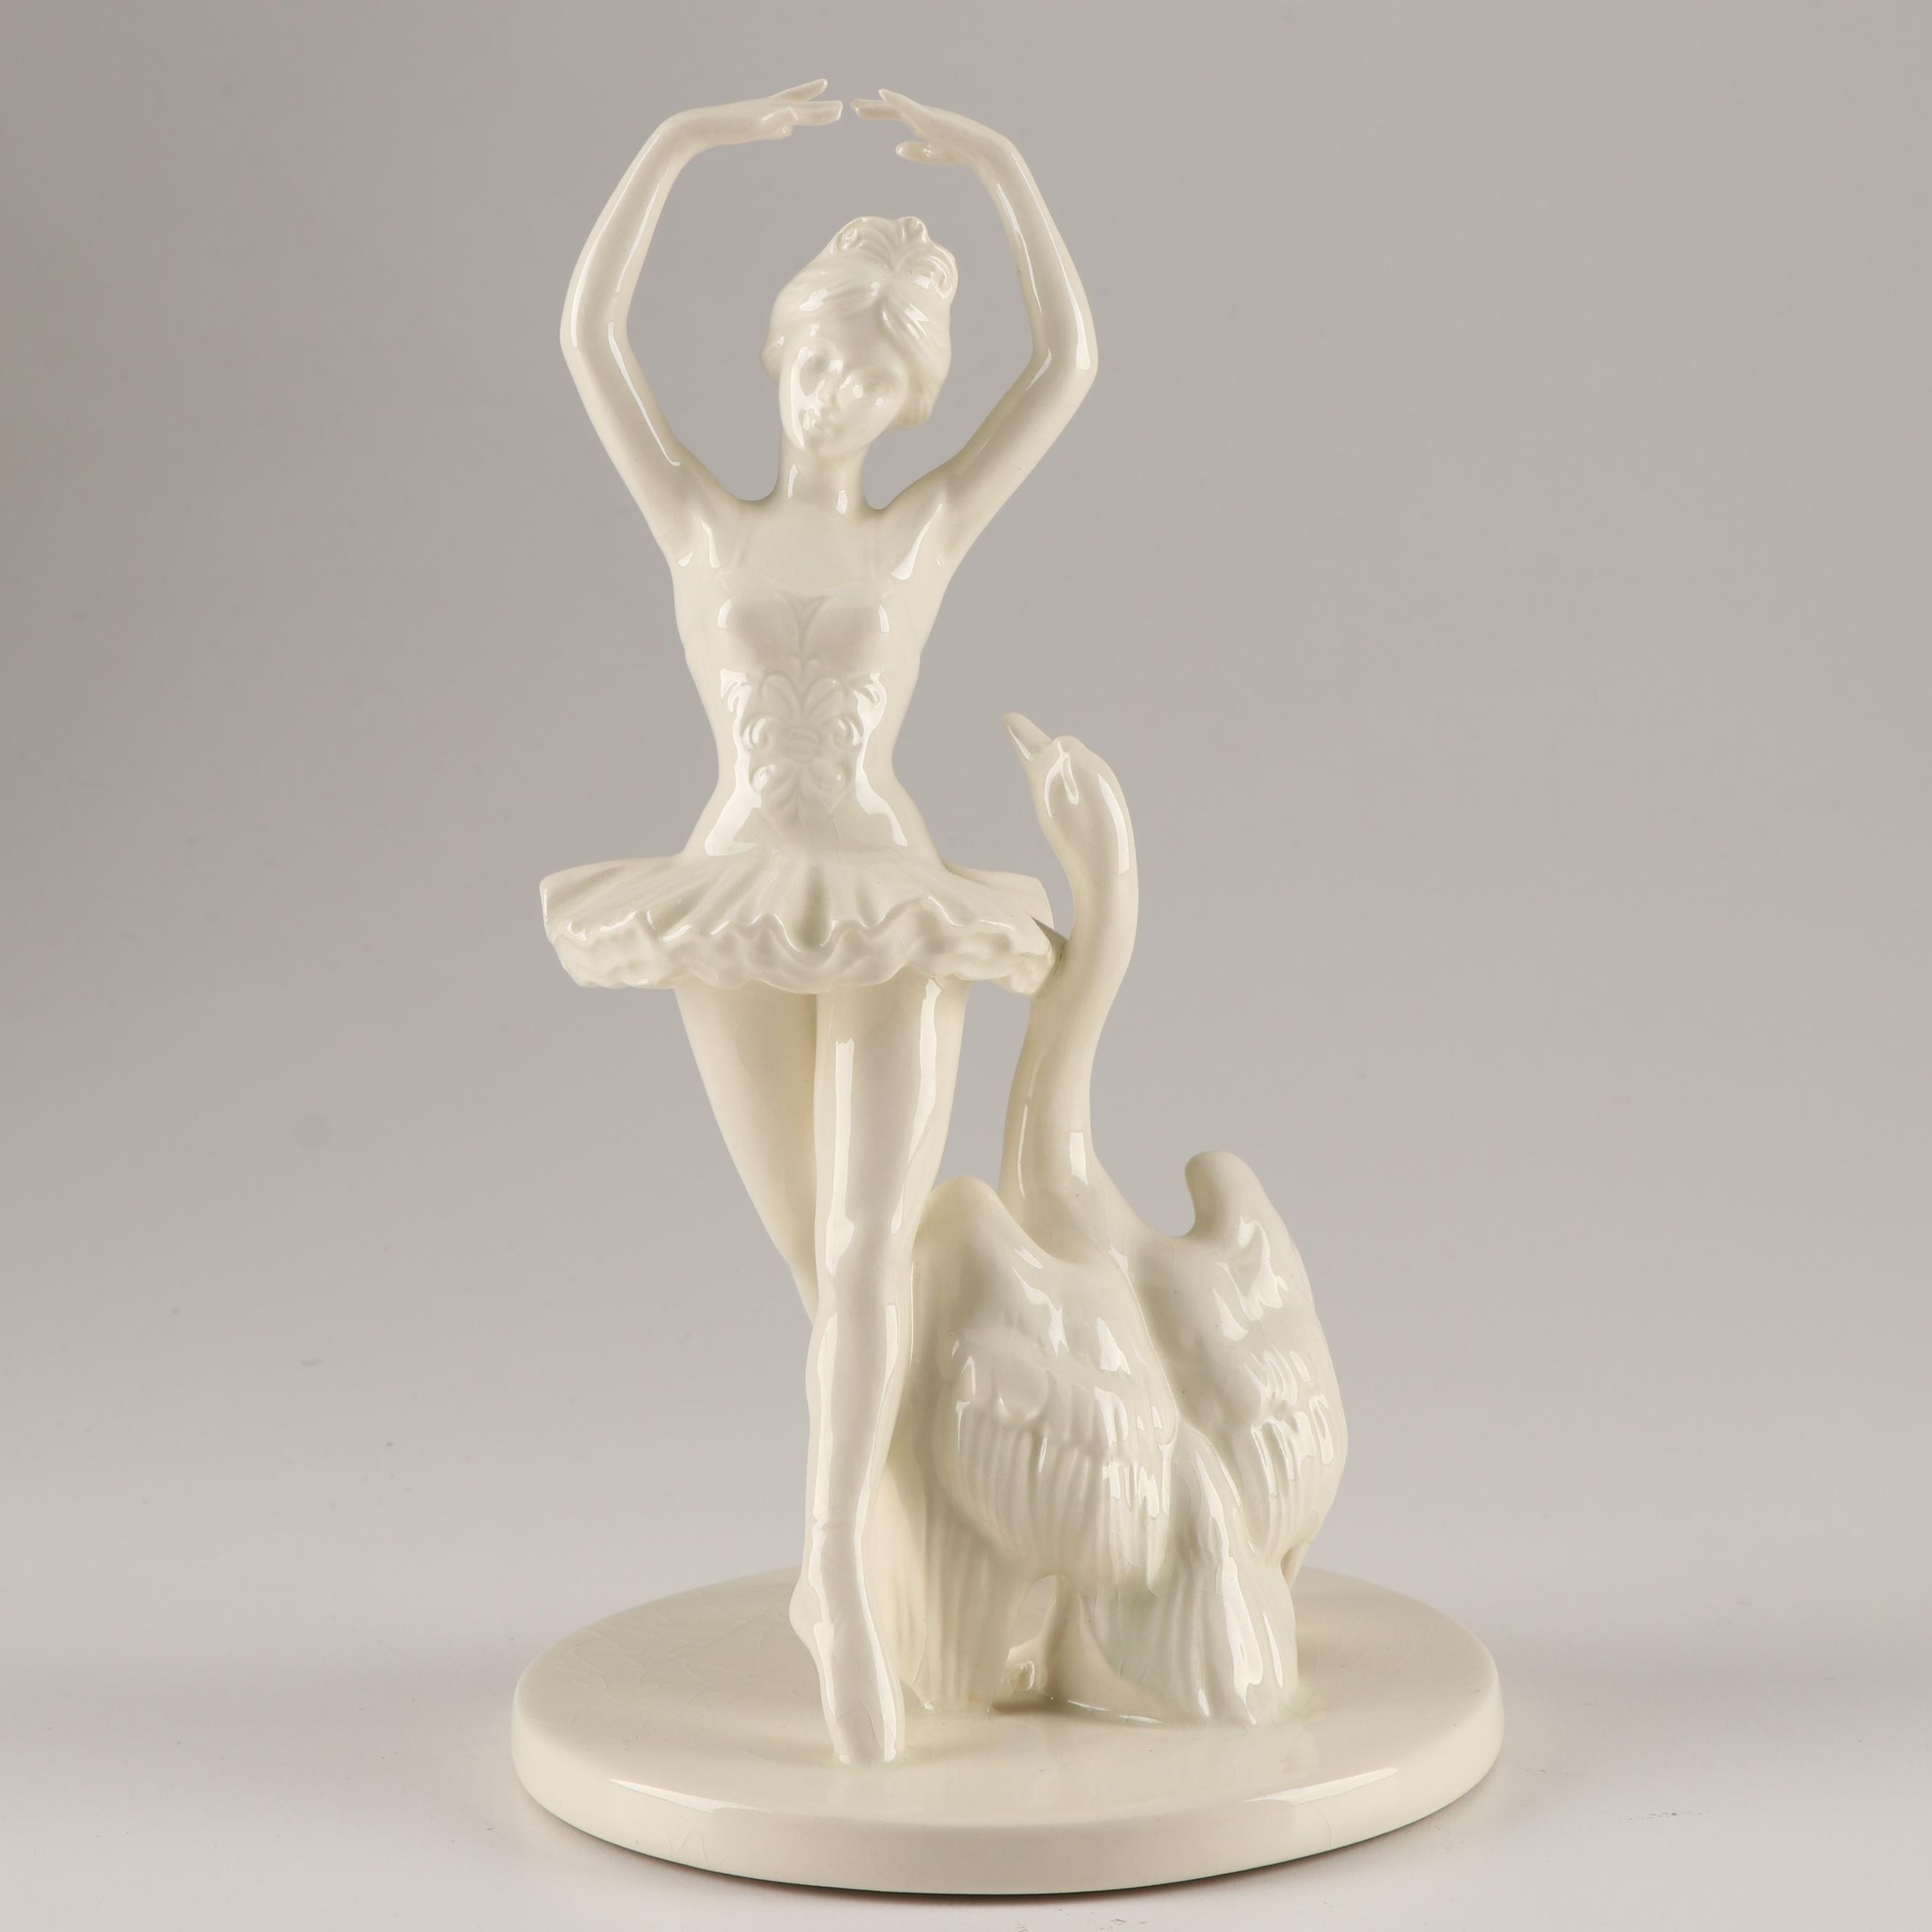 Goebel W. Germany Porcelain Ballerina and Swan Figurine, Mid-Century